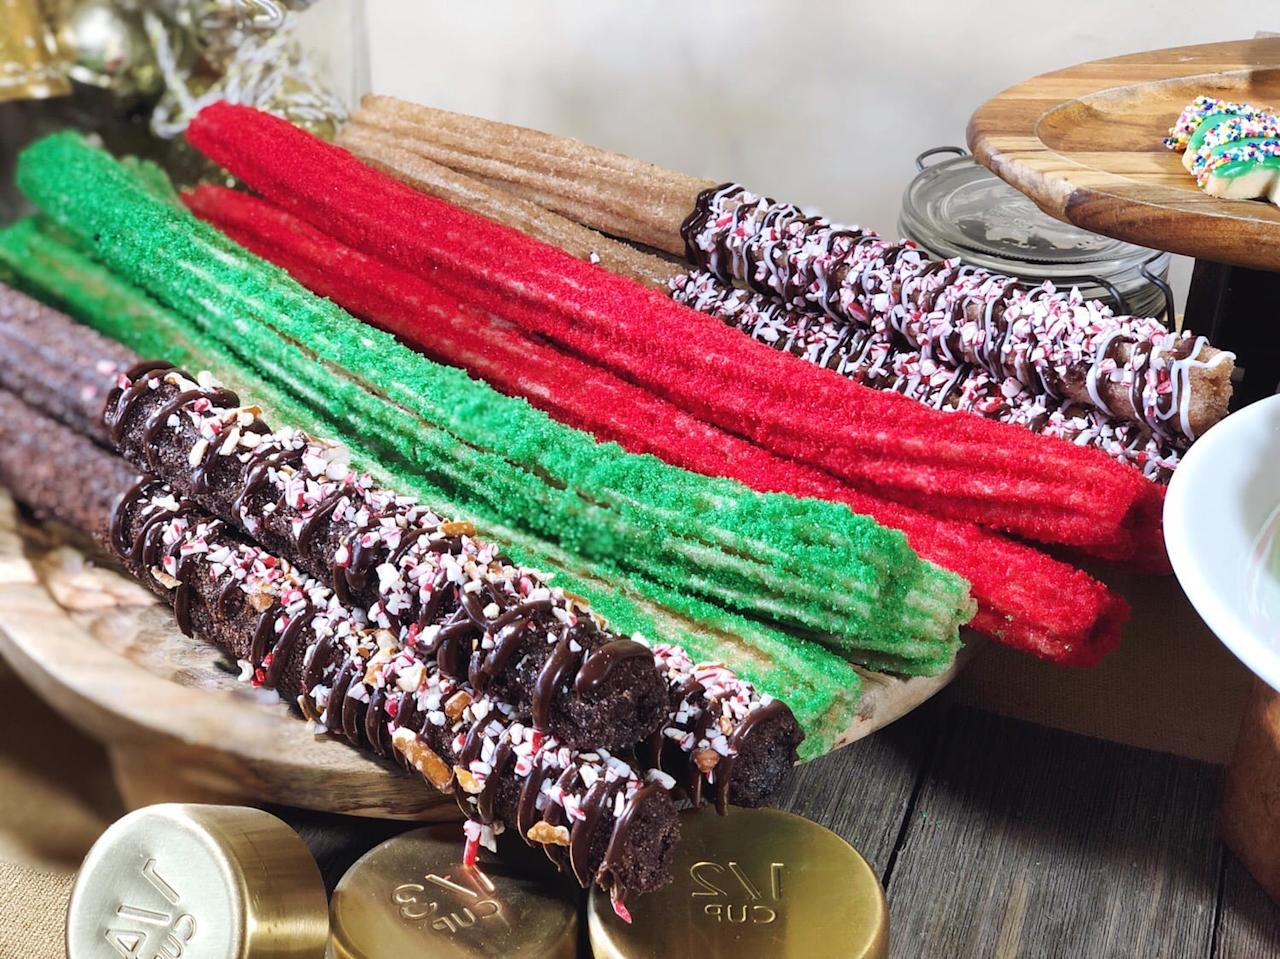 <p>Here are the new chocolate churros pictured with the red and green churros (which can be found near Goofy's Sky School in California Adventure) and the peppermint churros with crushed candy canes and chocolate and vanilla icing (which can be found near the Redwood Creek Challenge Trail).</p>